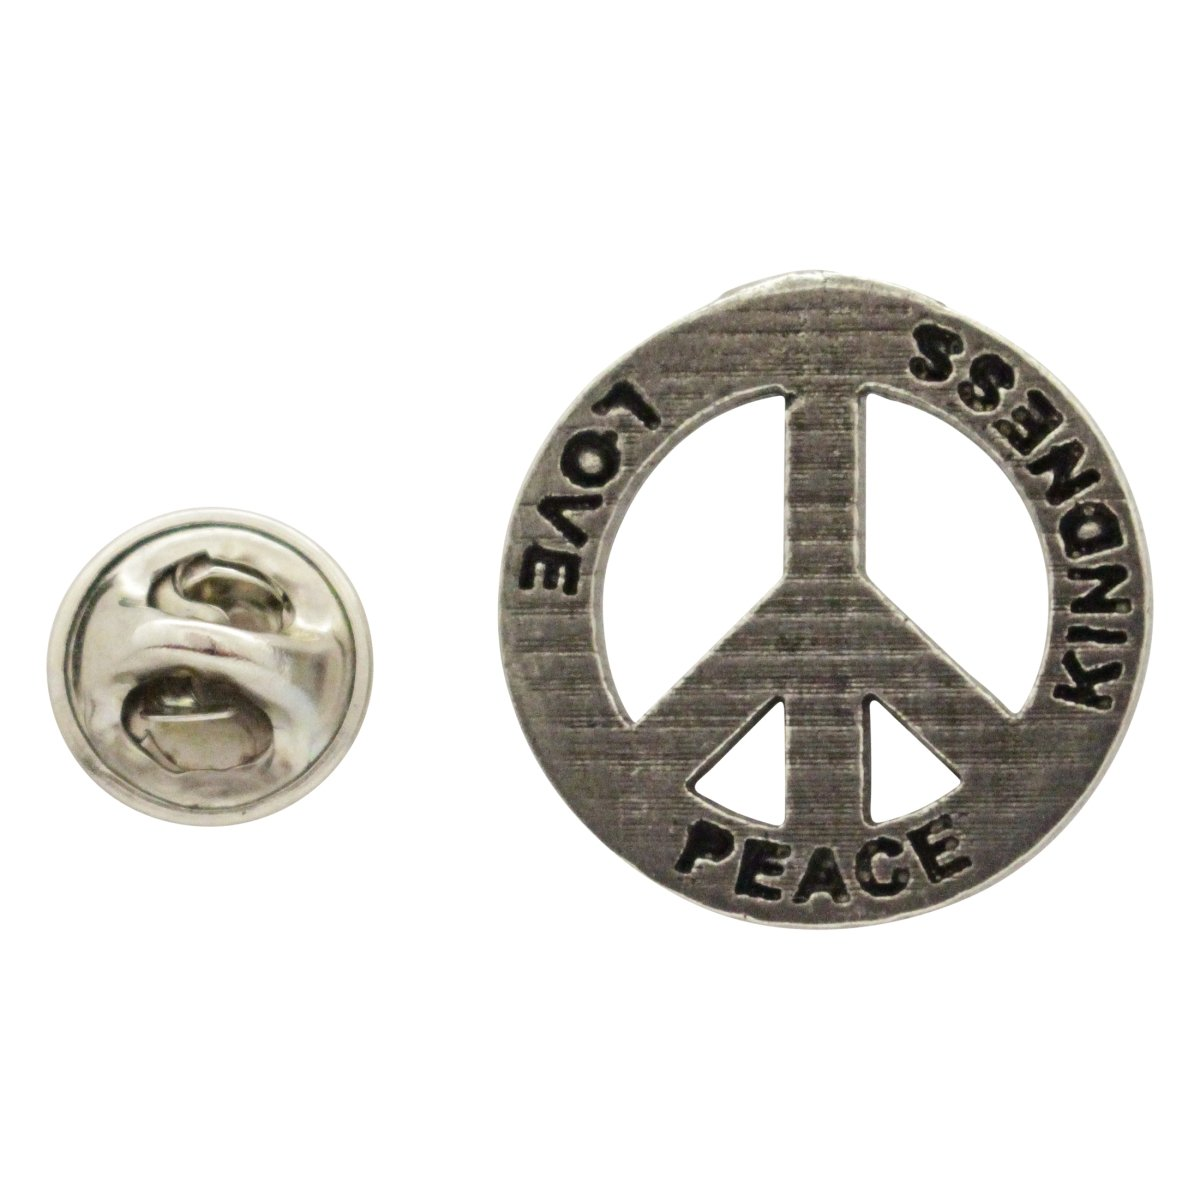 Creative Pewter Designs, Pewter Peace Love Kindness Lapel Pin Brooch, Antiqued Finish, A250